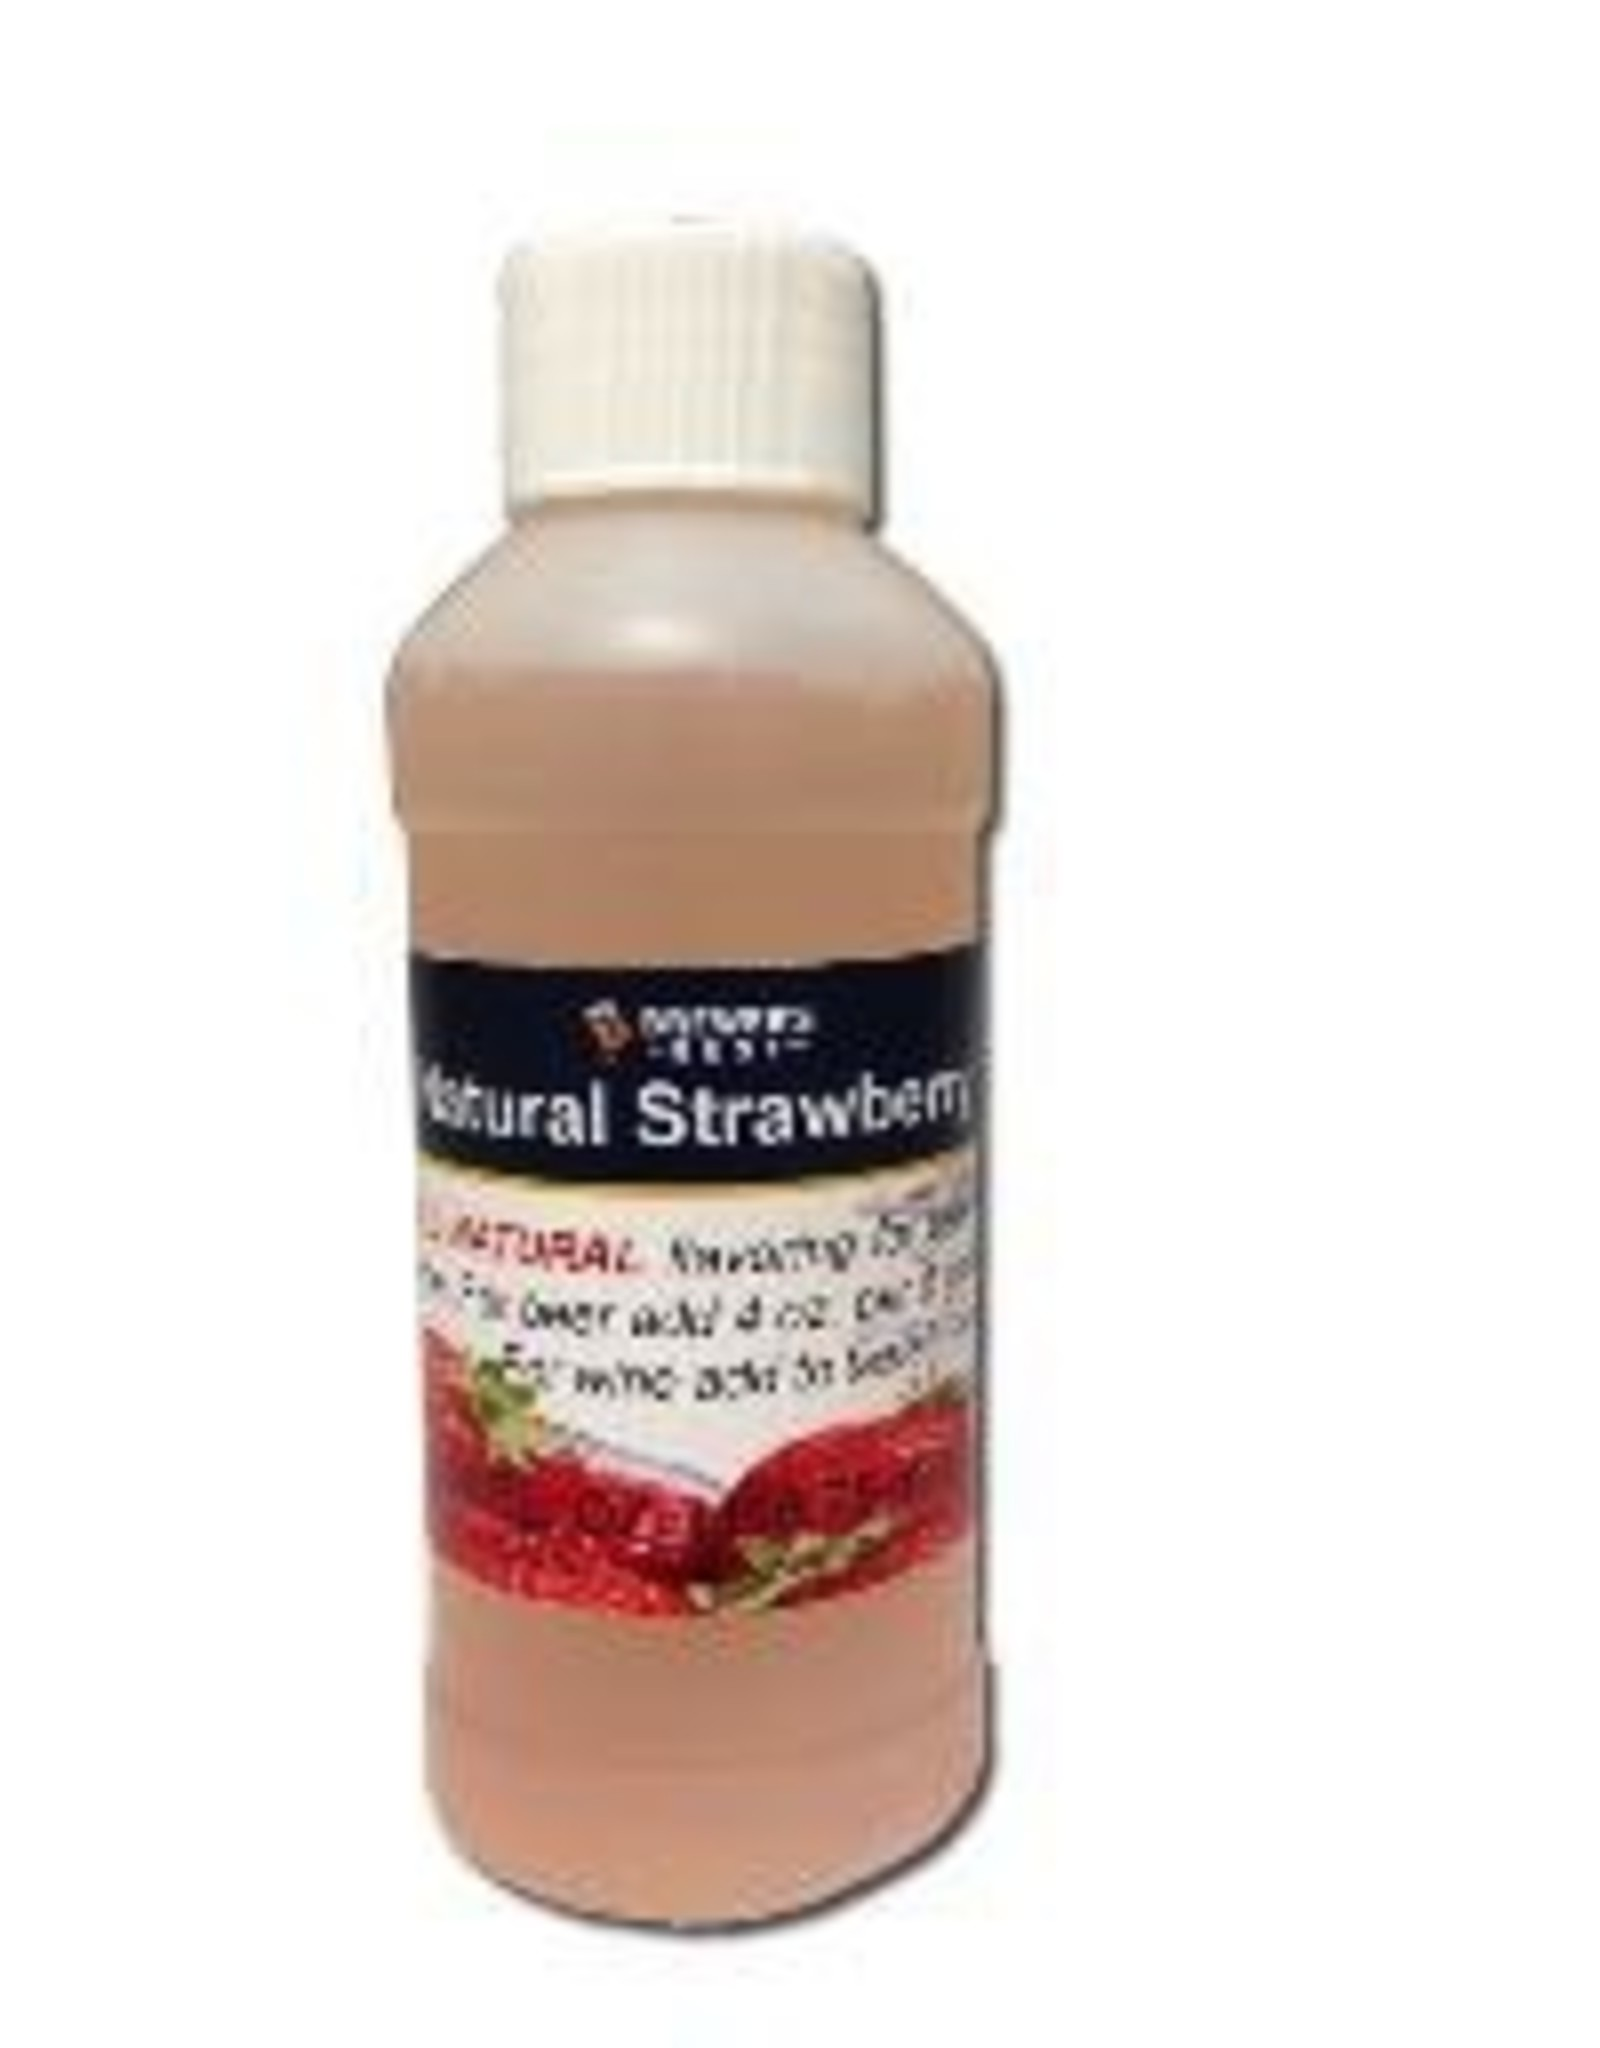 BREWERS BEST NATURAL STRAWBERRY FLAVORING EXTRACT 4 OZ